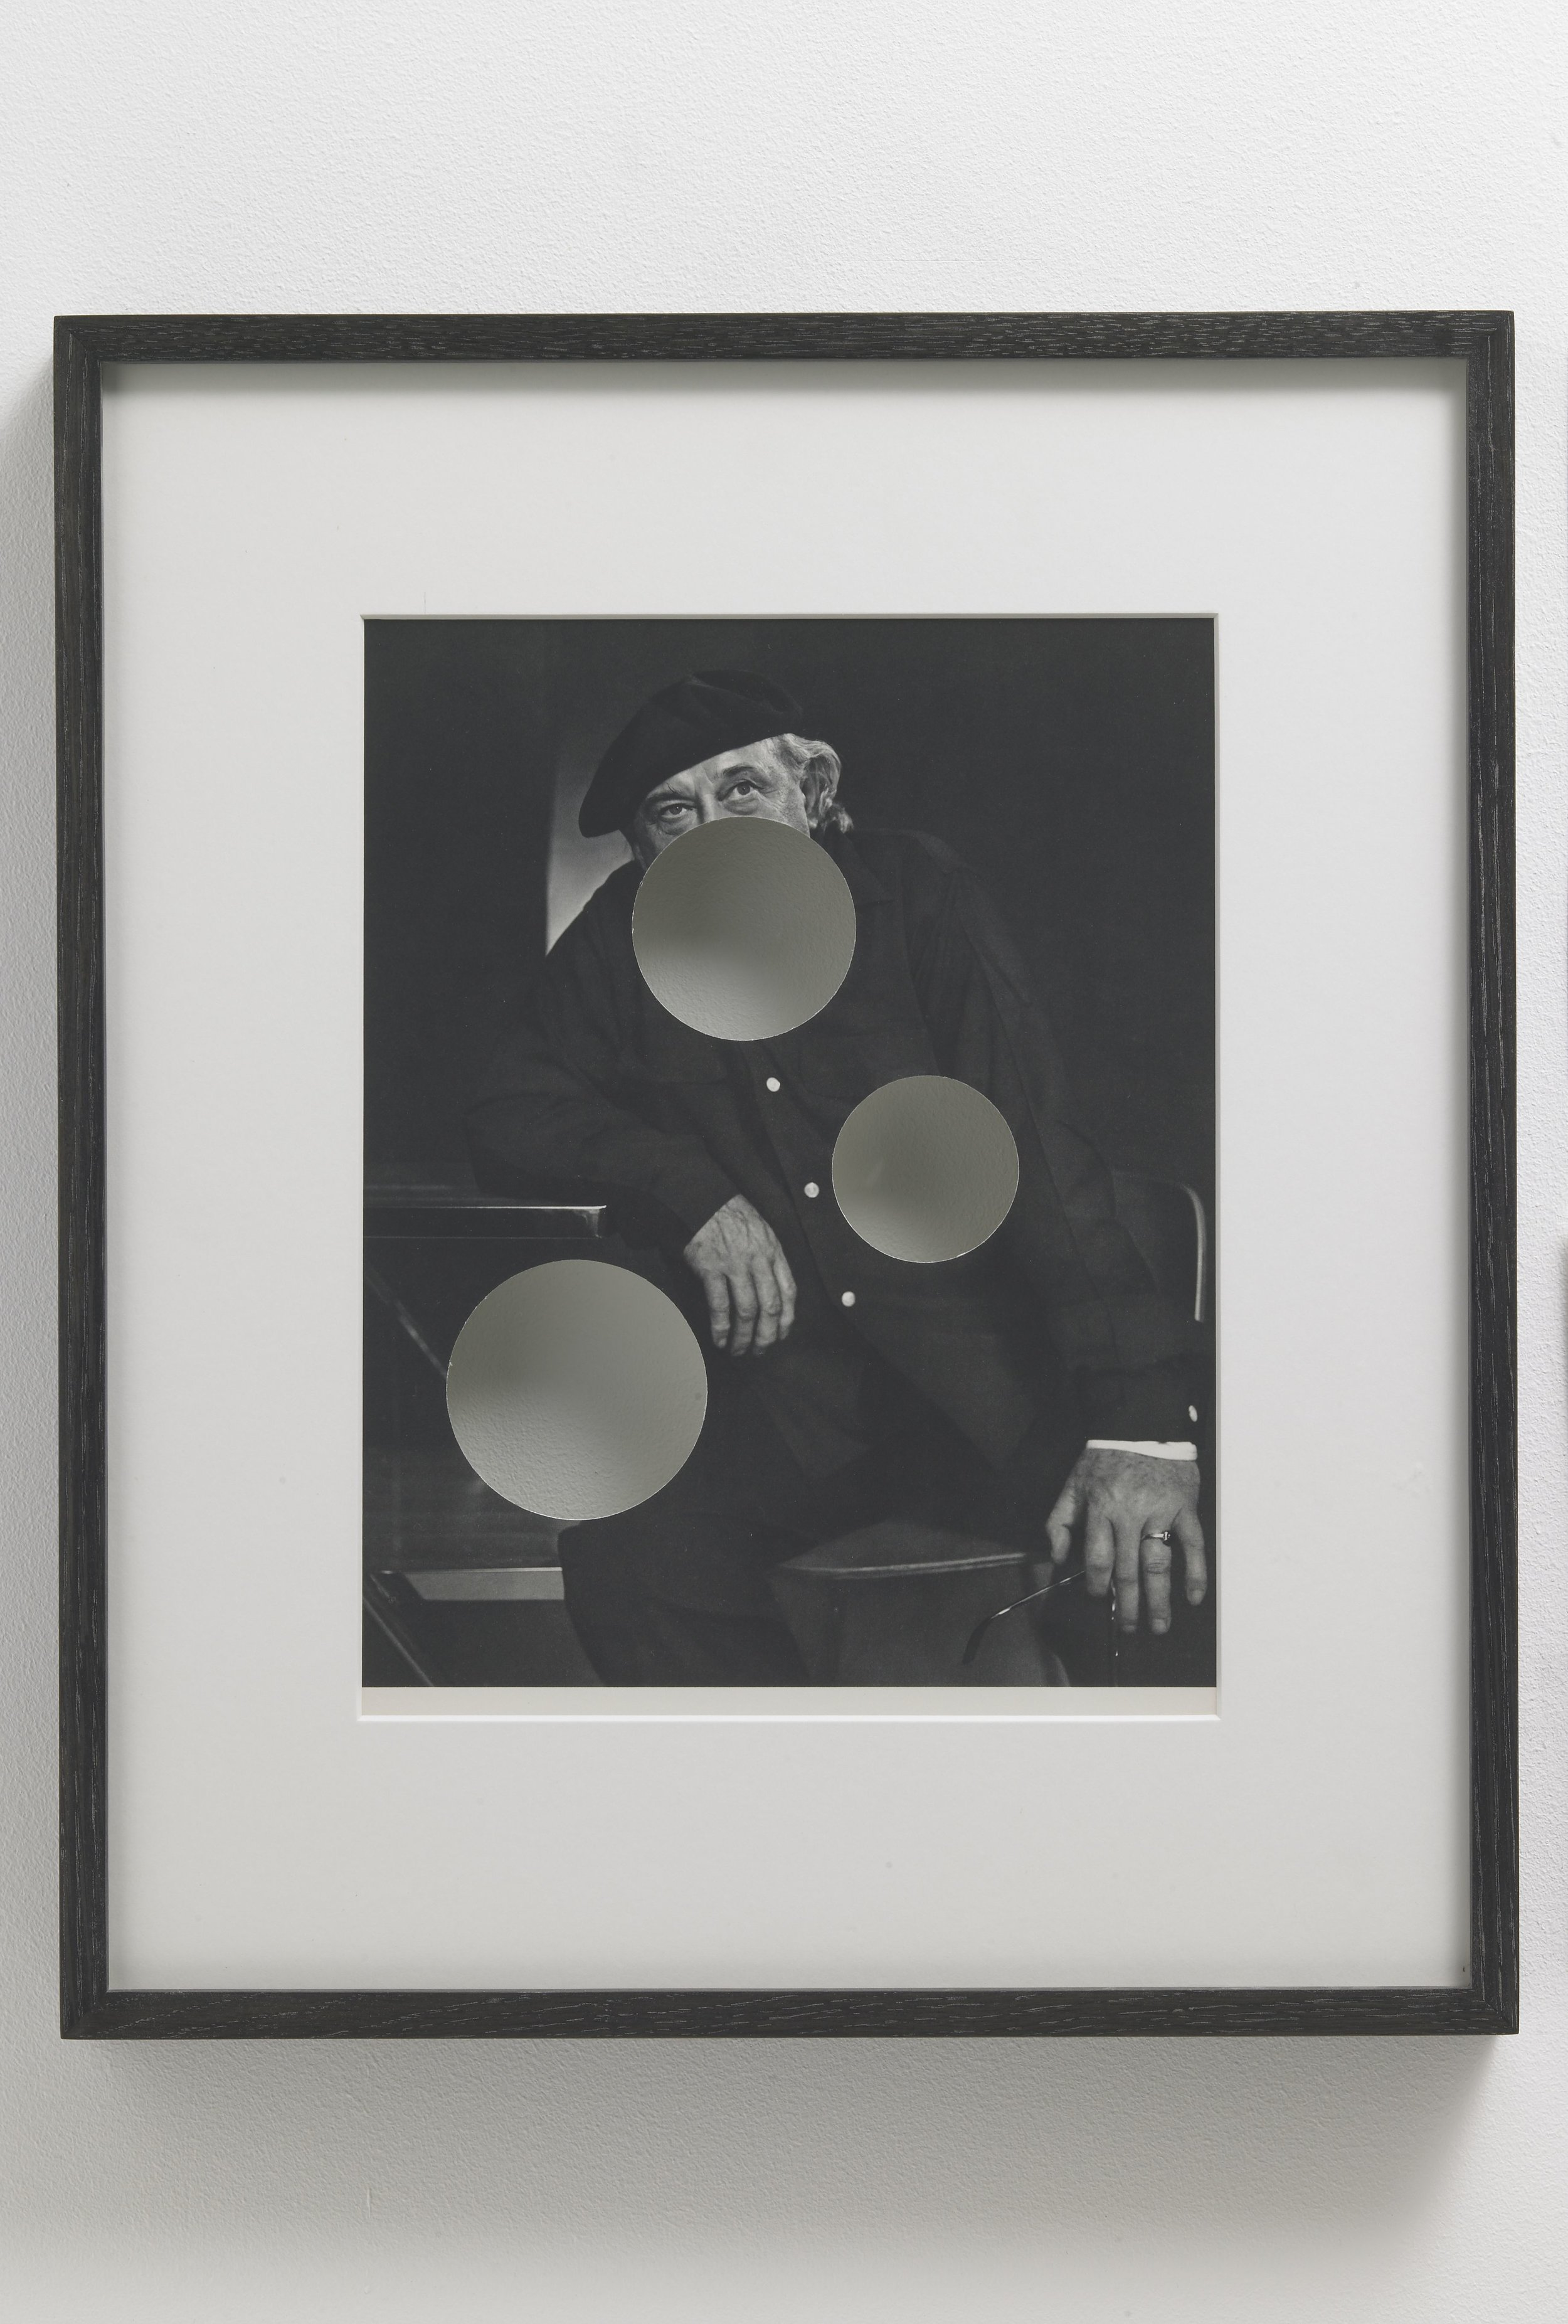 Cerith Wyn Evans, Faces of Our Time Penetrated, after Yousuf Karsh (Jacques Lipchitz), 2007